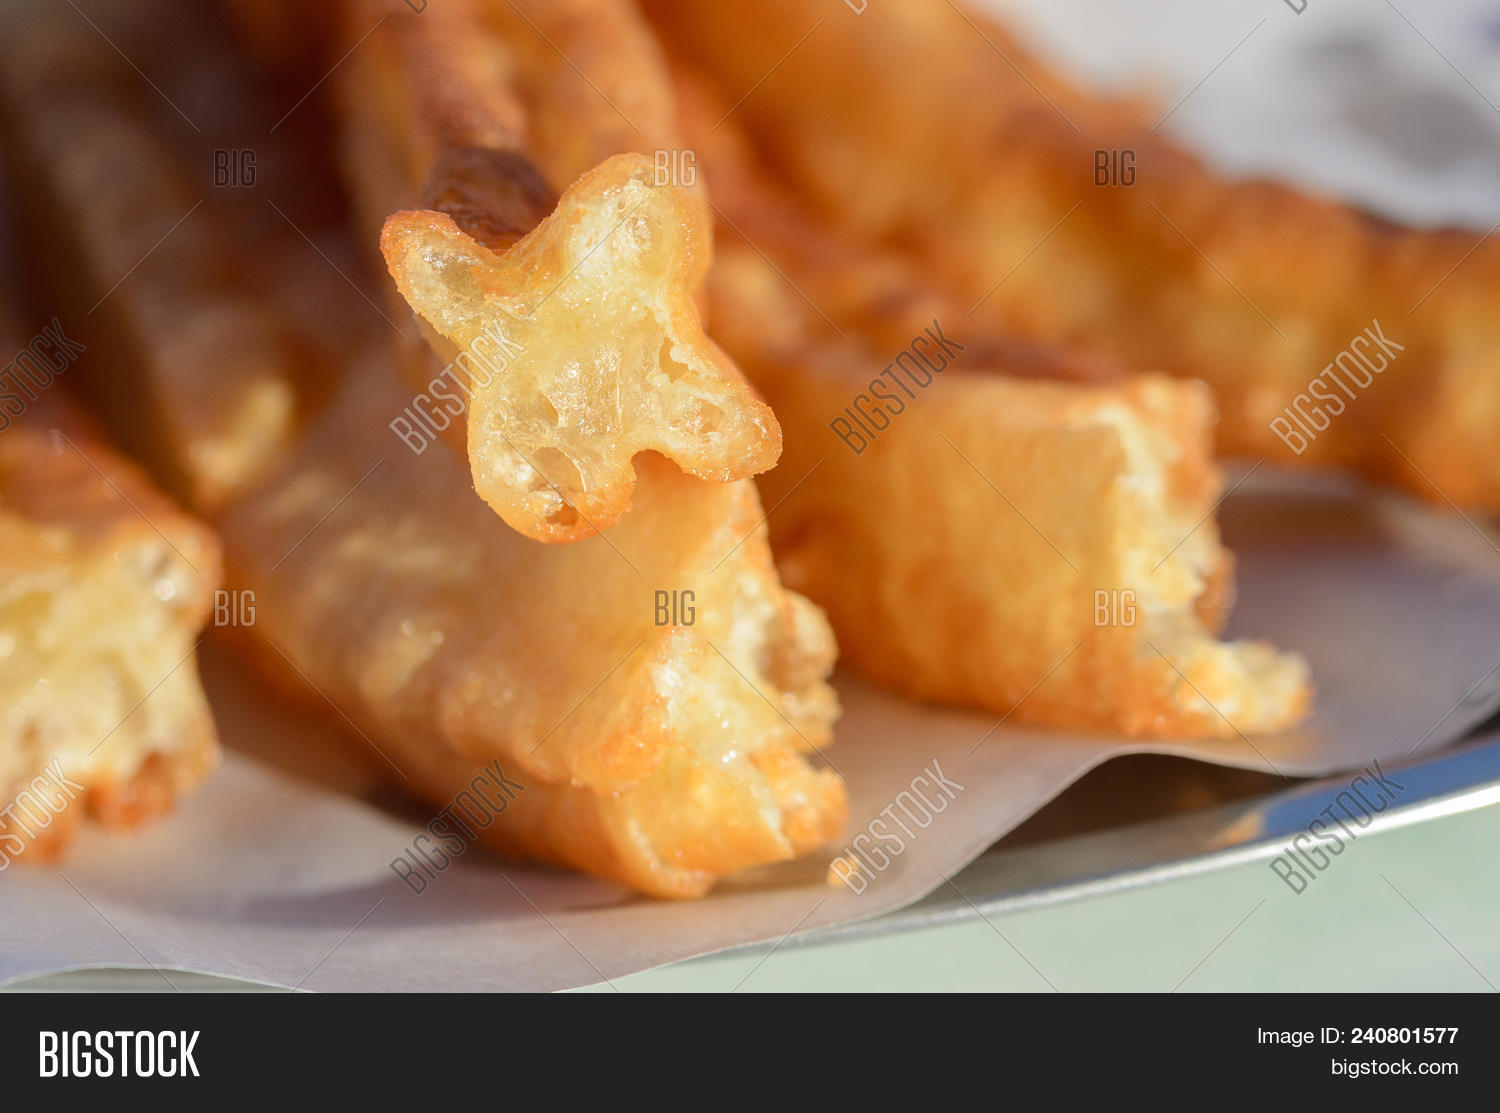 typical spanish snack image photo free trial bigstock